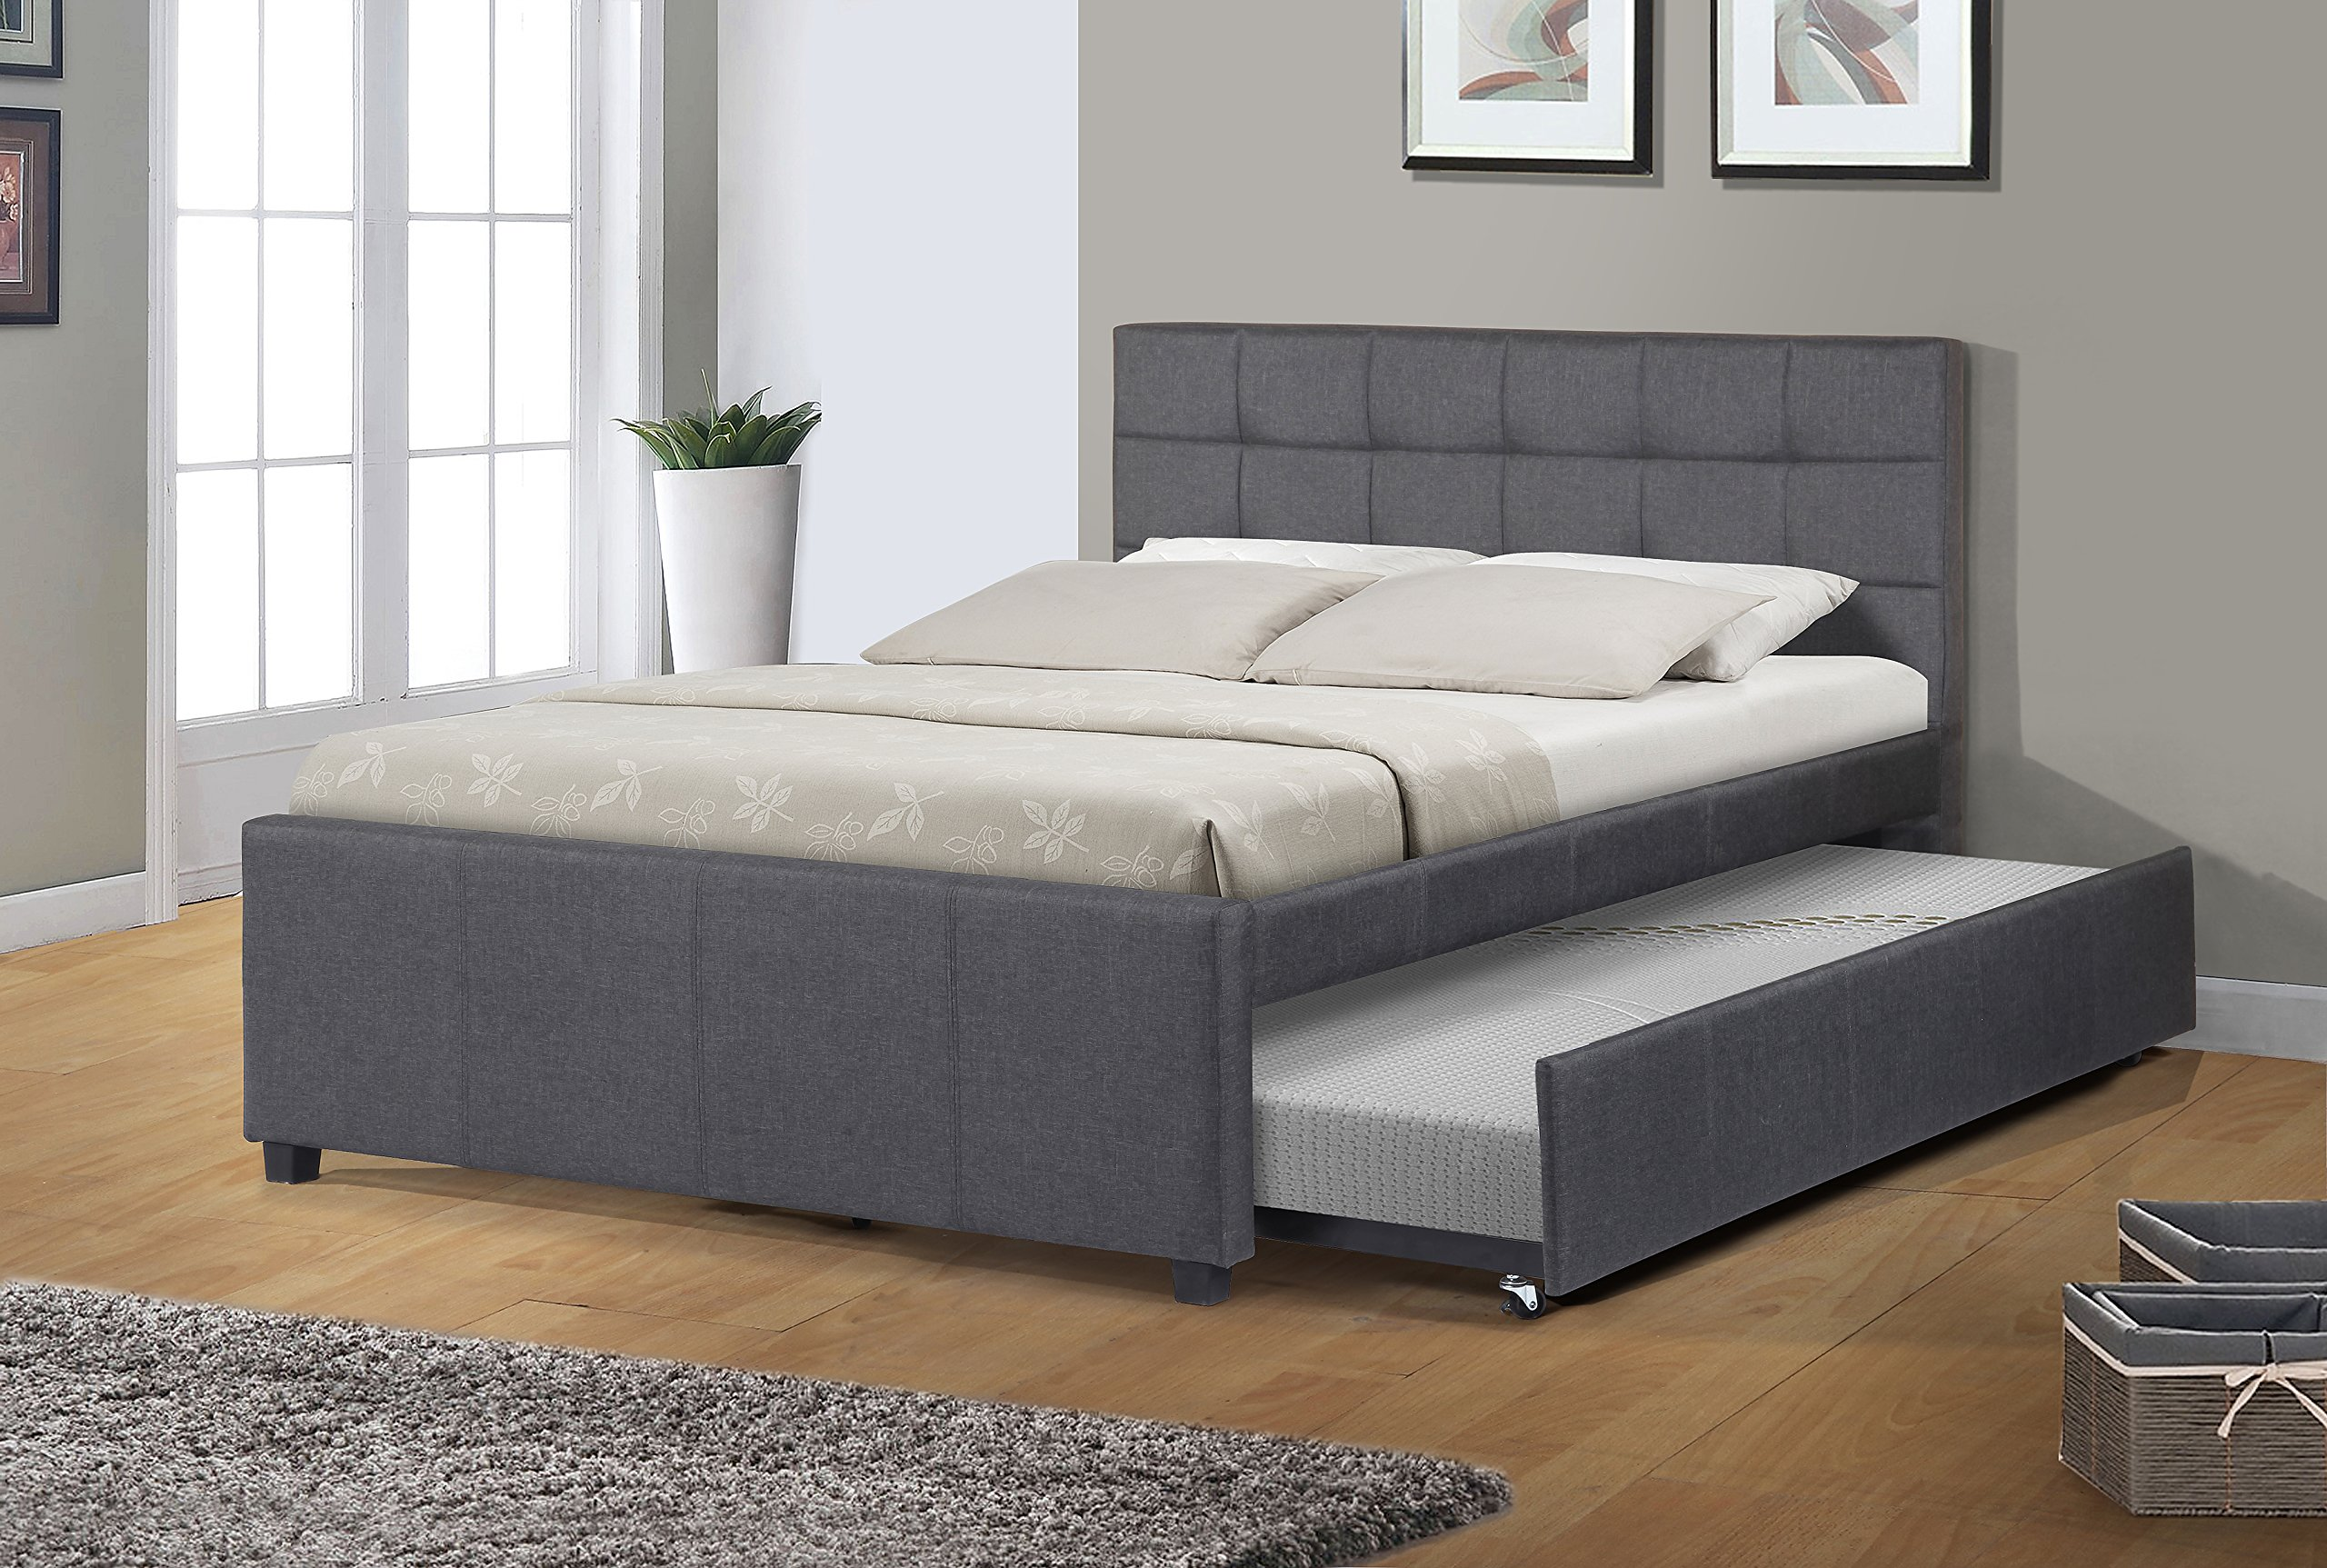 Best Quality Furniture K27 Bed W/Trundle, Full, Dark gray